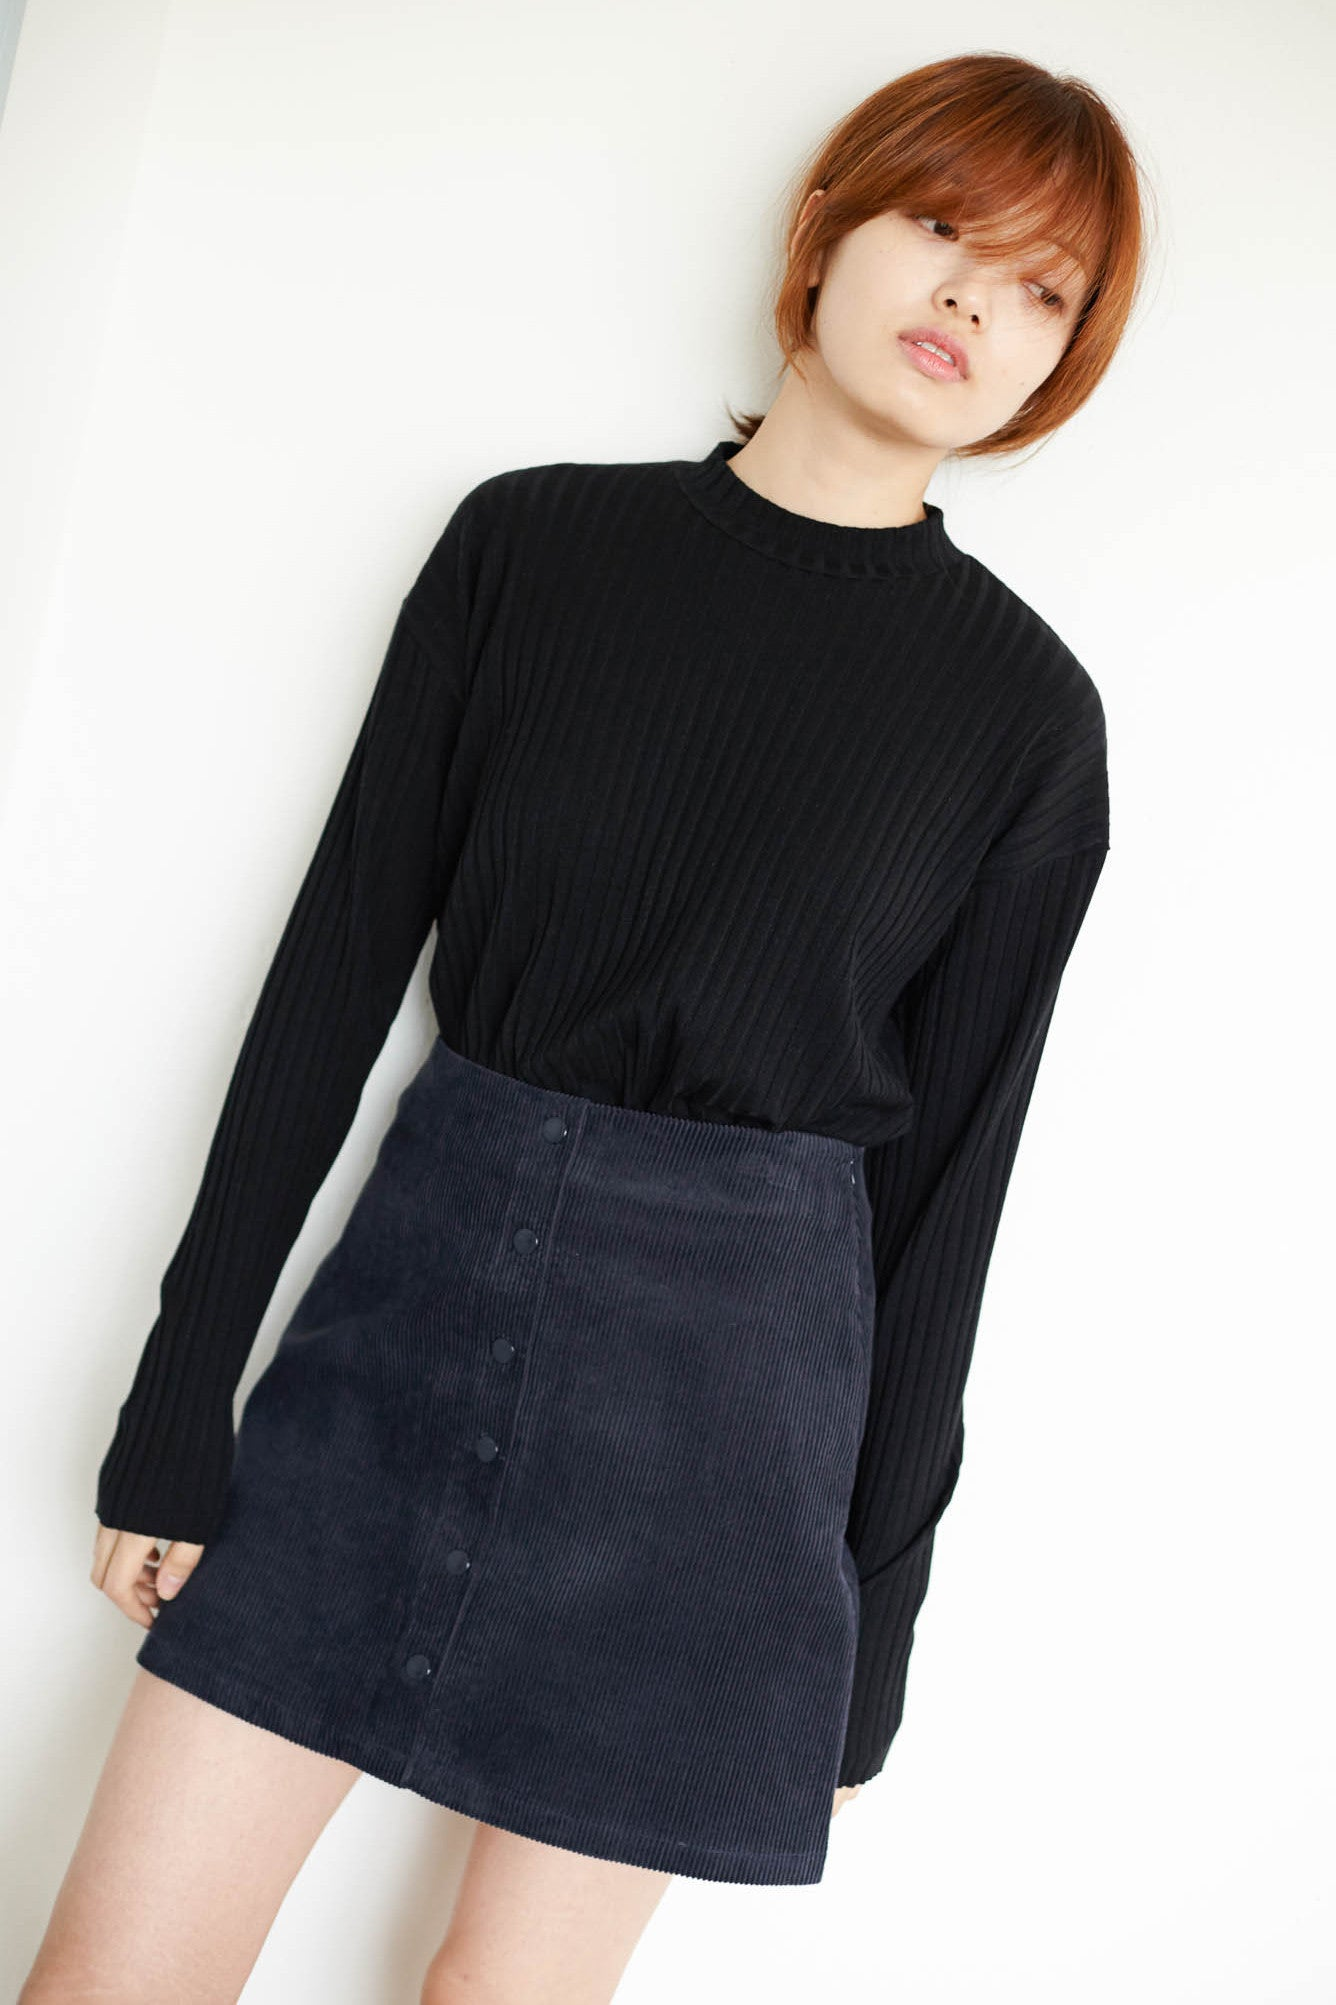 Ueno high neck ribbed loose top